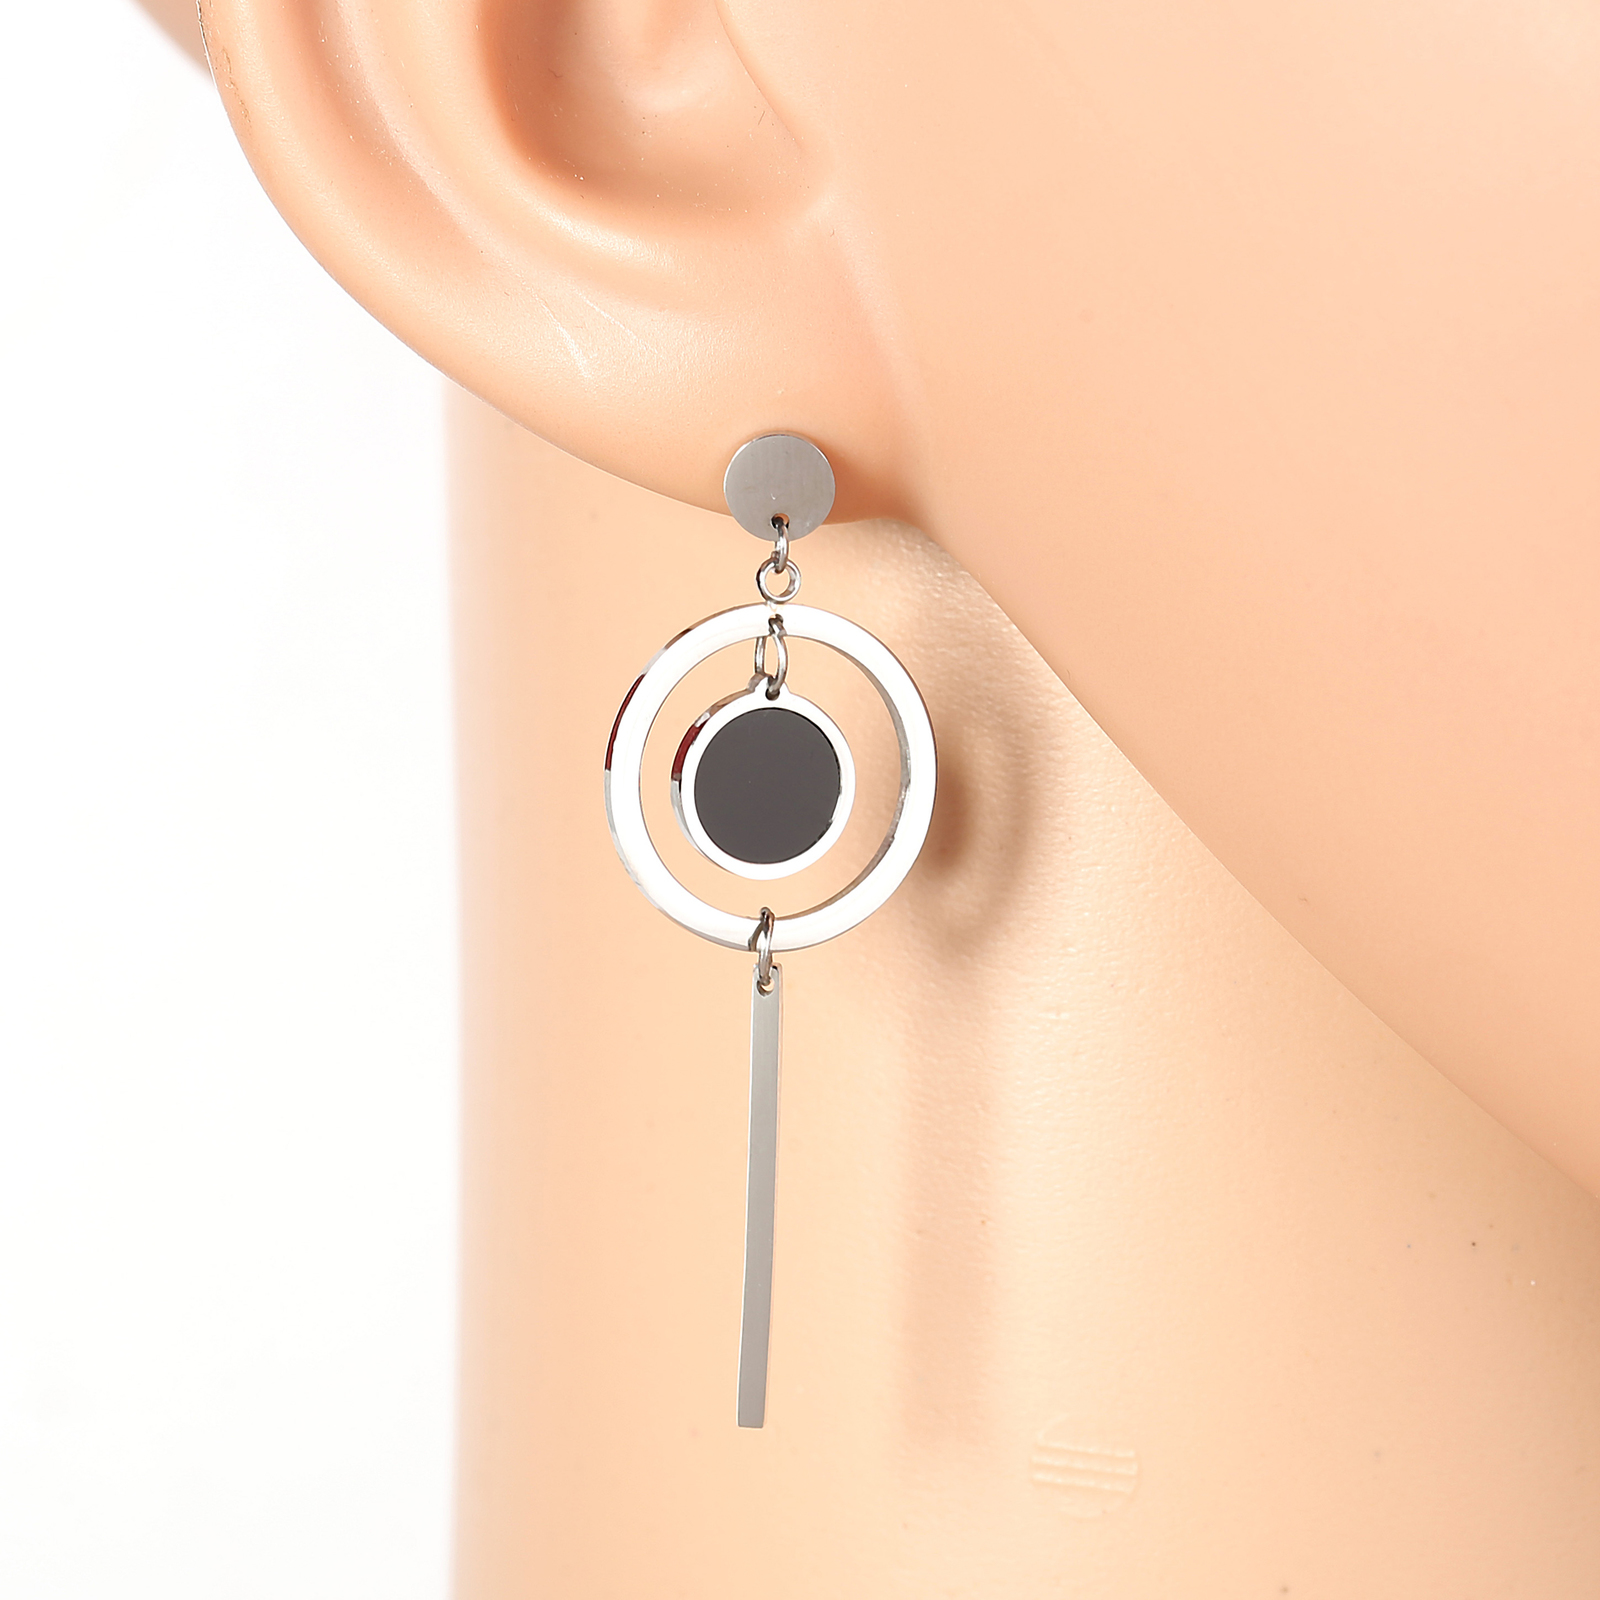 Primary image for Silver Tone Designer Drop Earrings, Jet Black Faux Onyx Circle & Dangling Bar